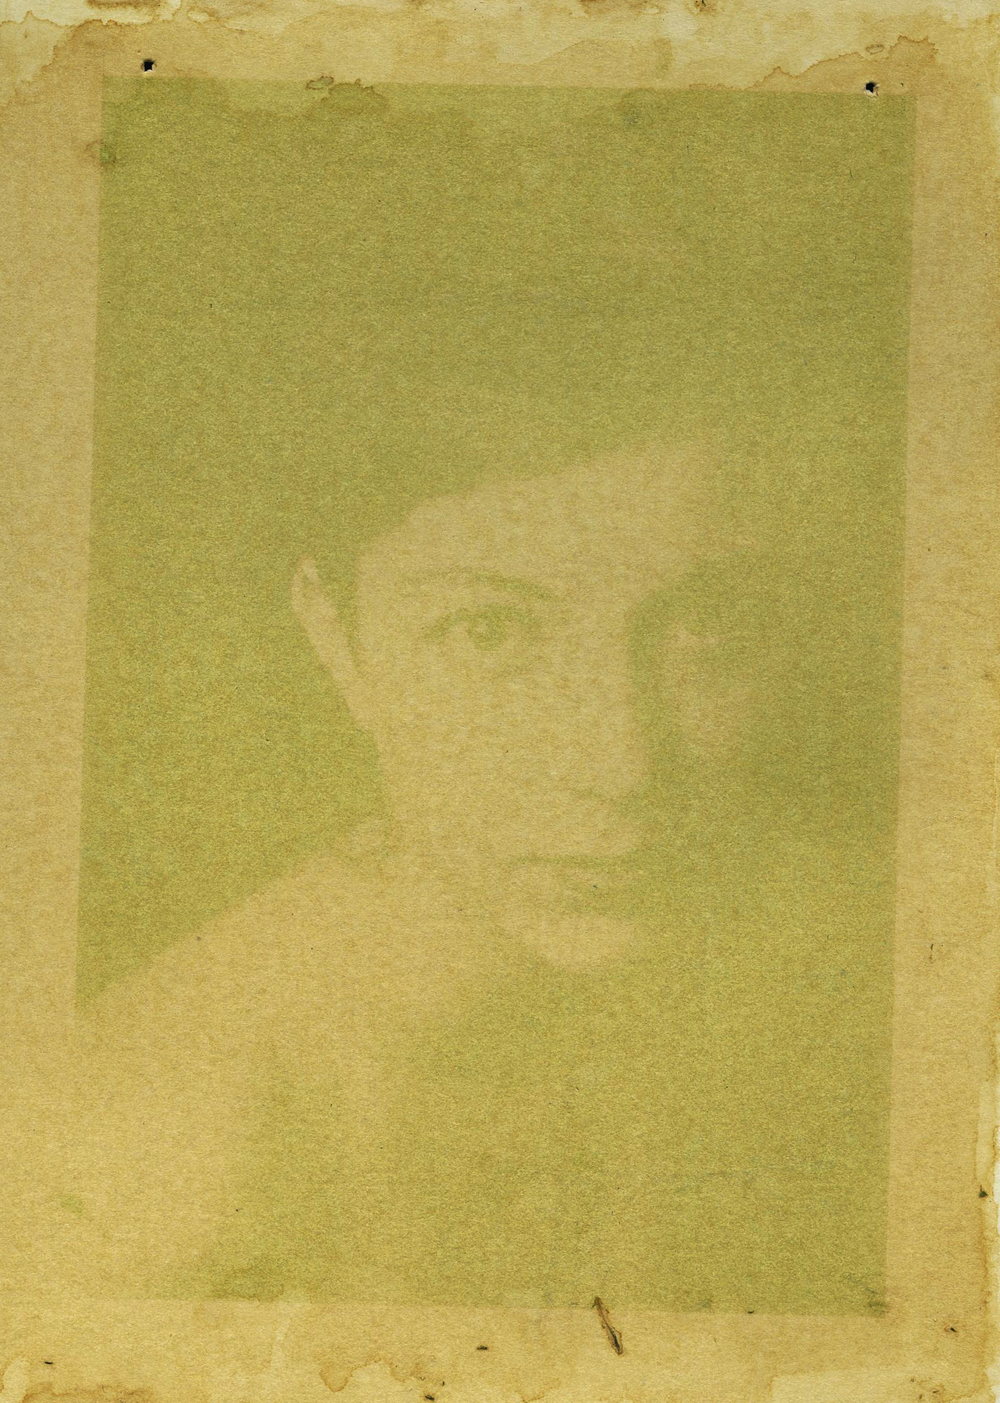 Taylor, Spinach emulsion anthotype, 2014